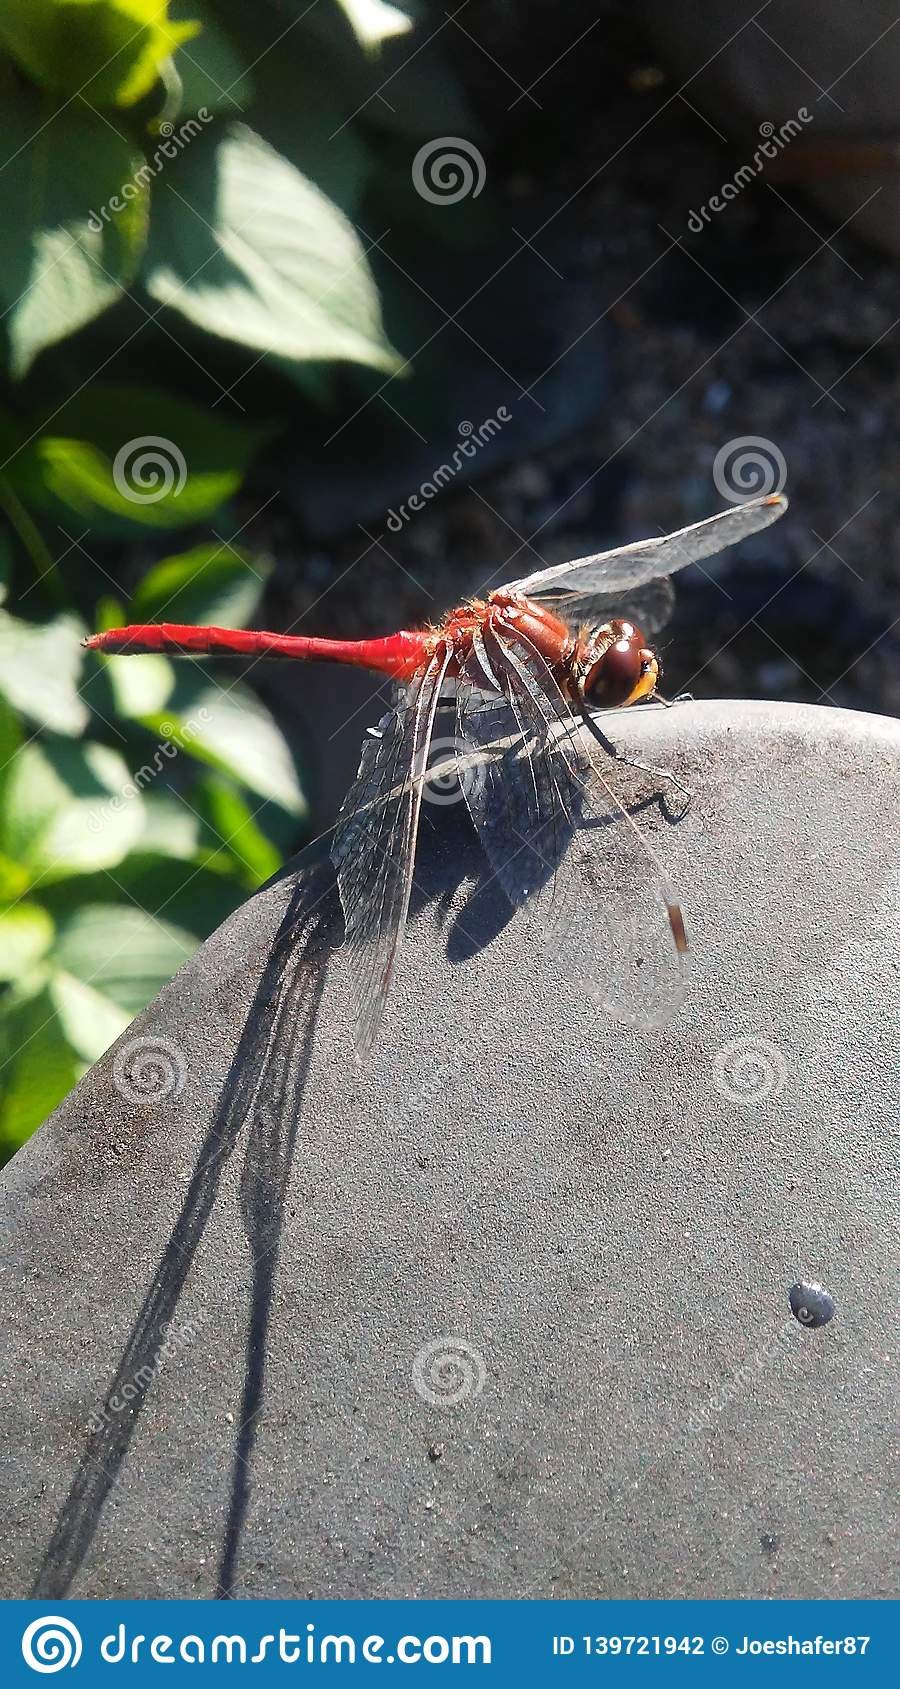 Cool close up of a red dragonfly